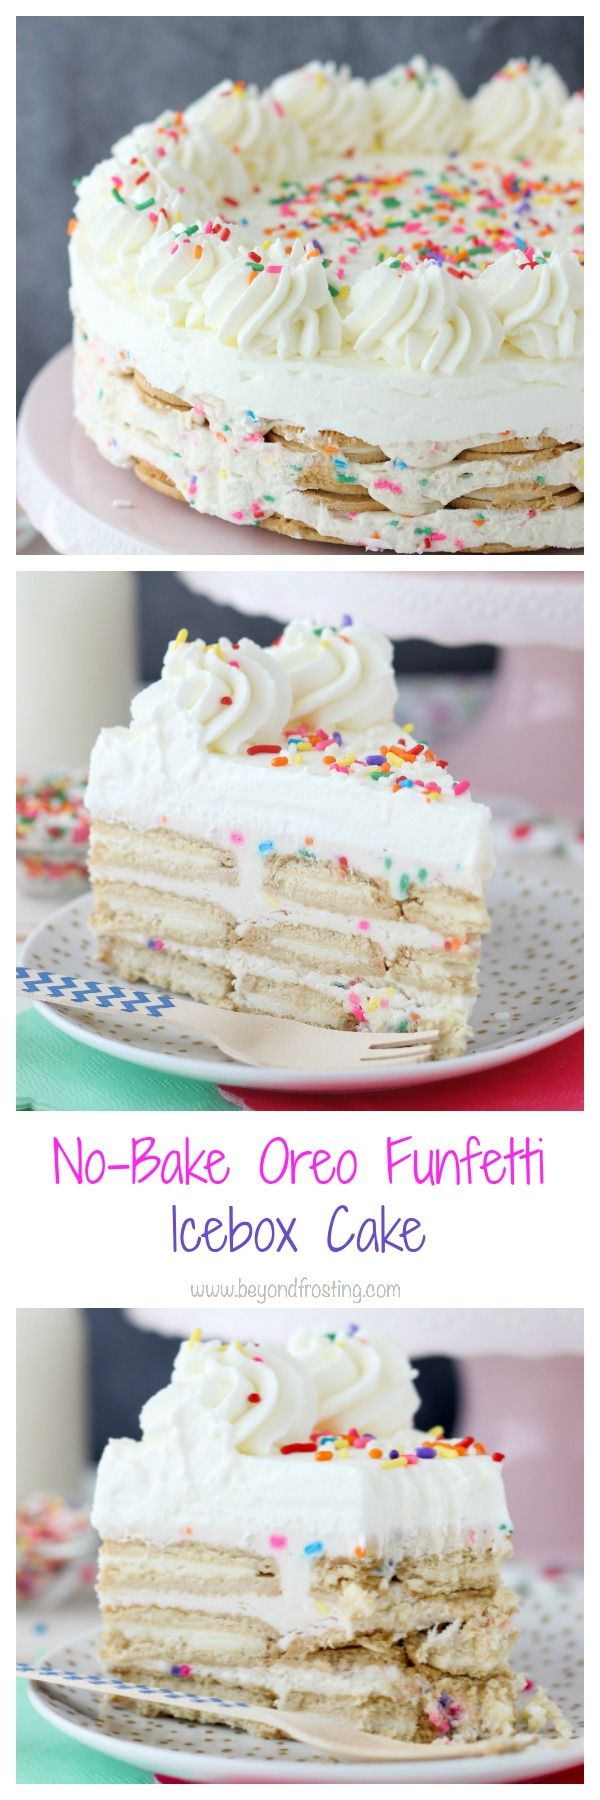 This No Bake Oreo Funfetti Icebox Cake gives you the ultimate cake